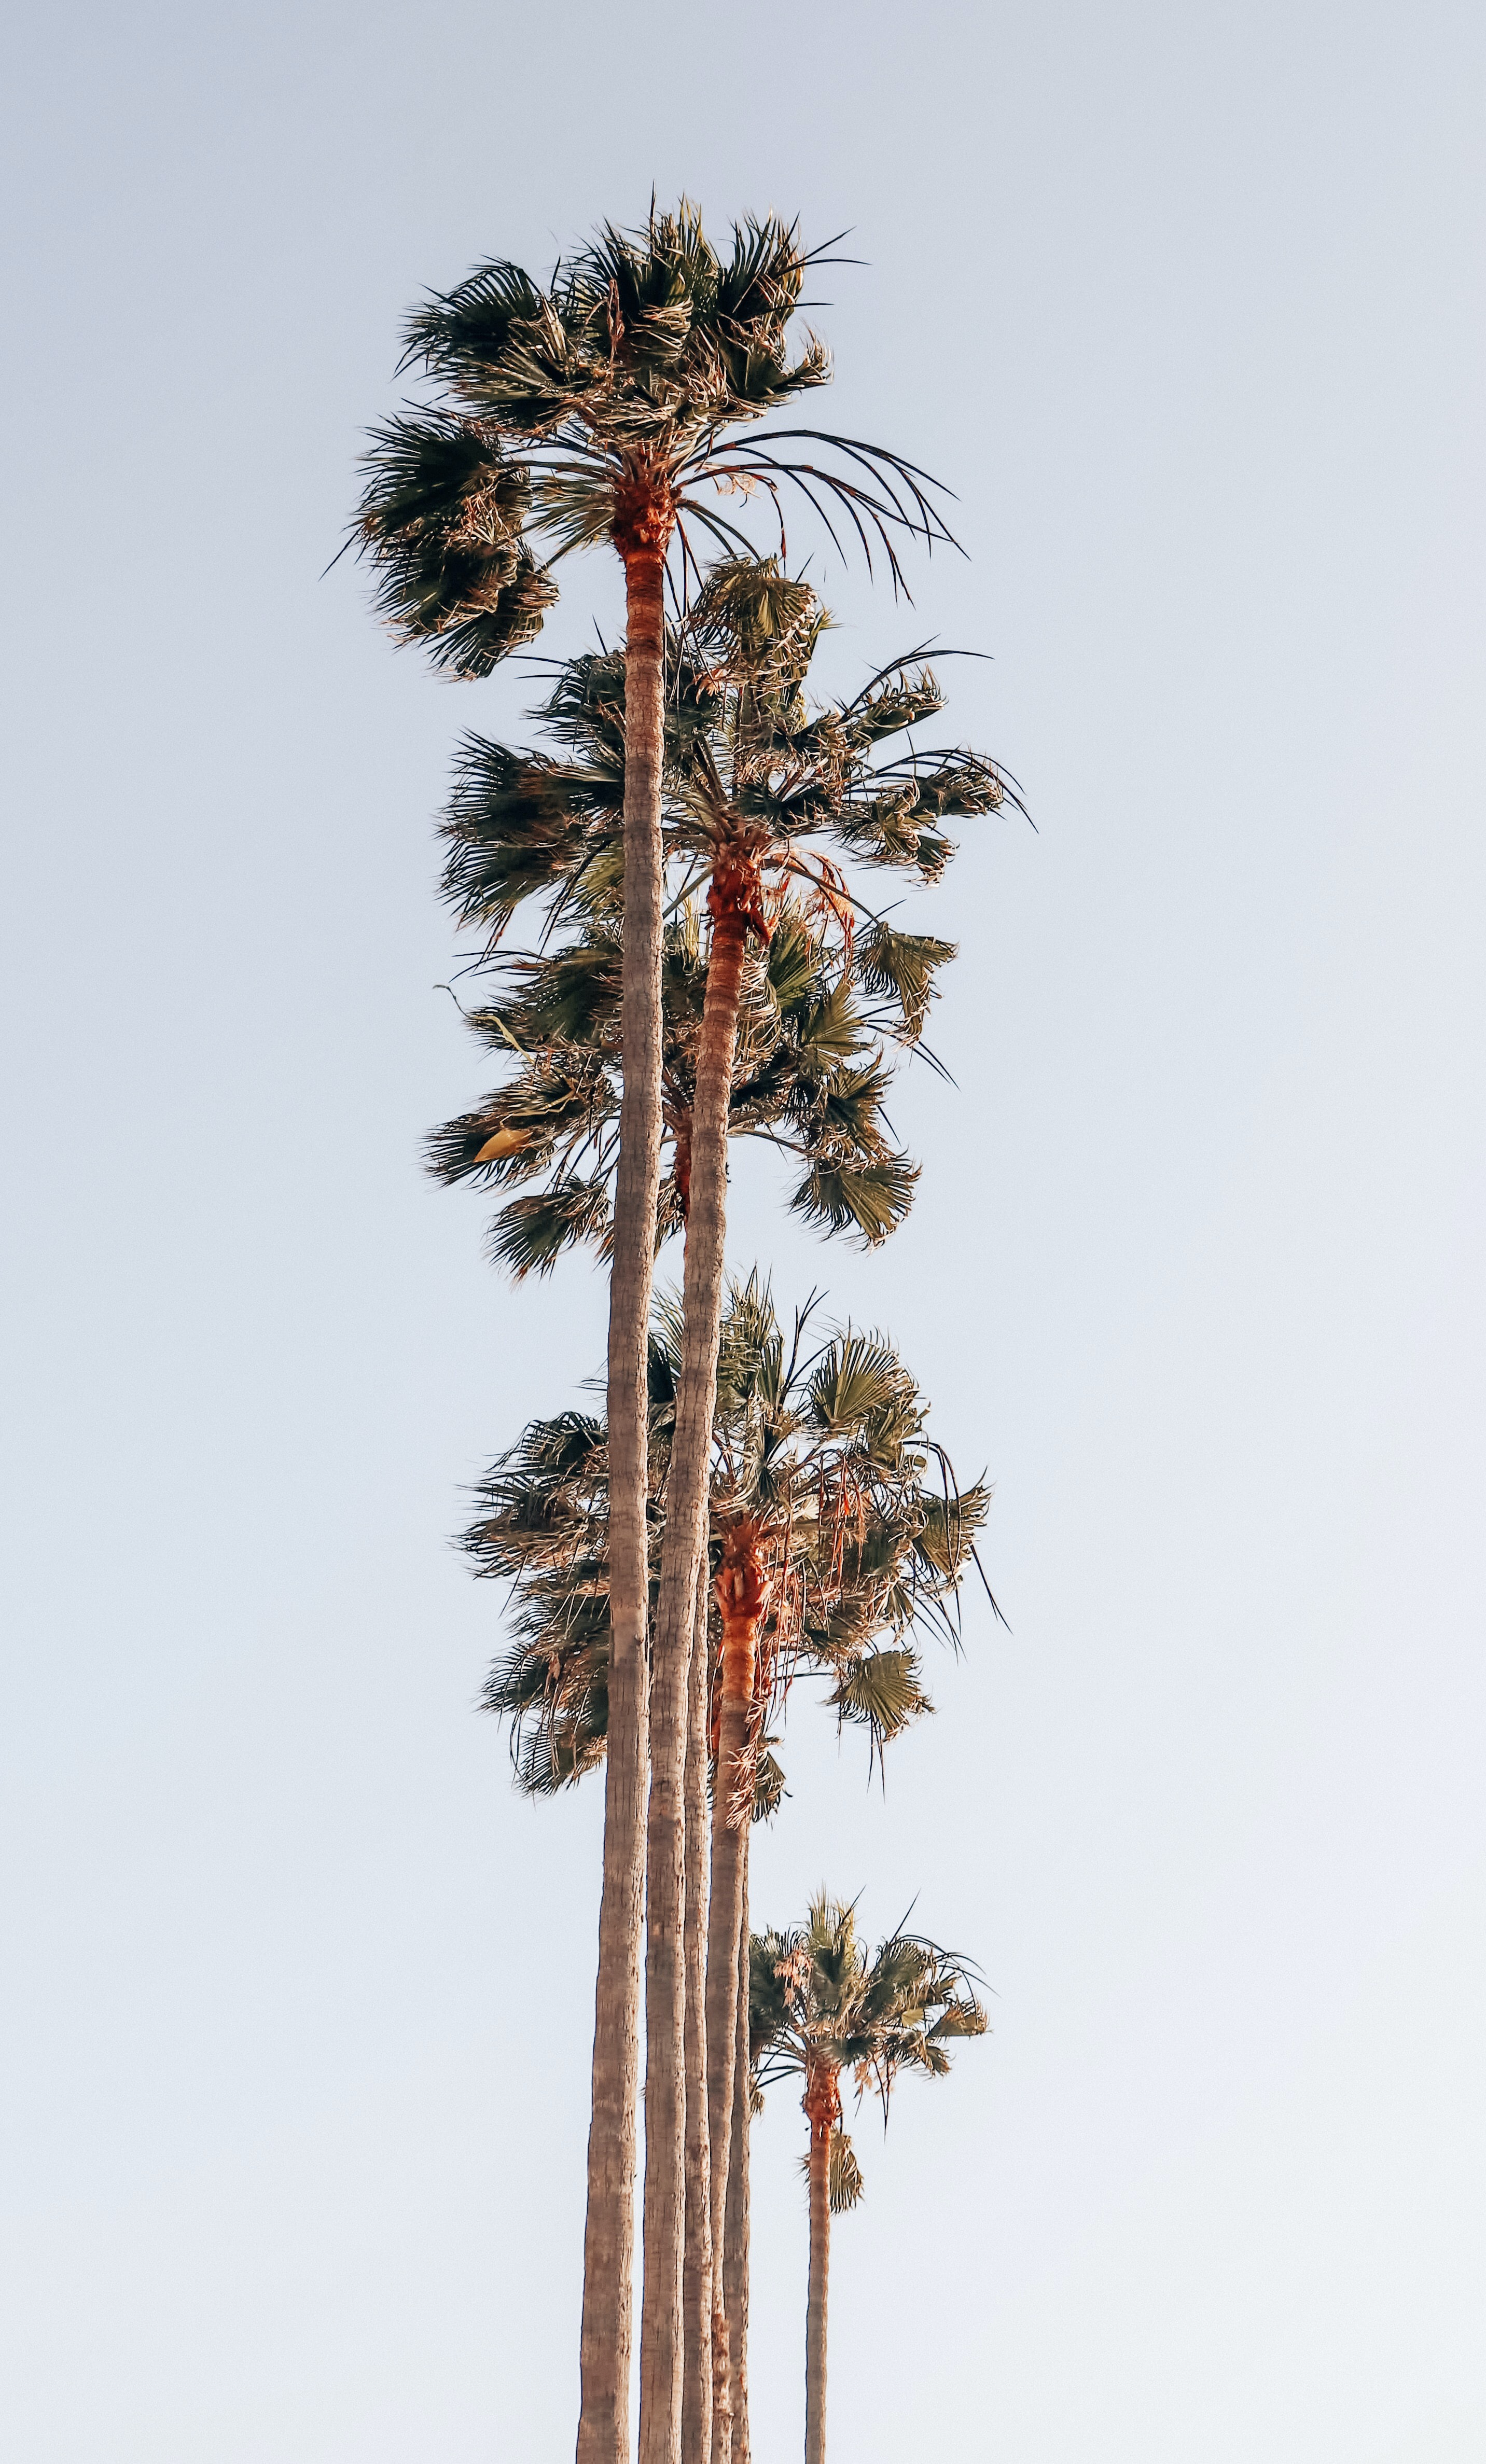 worm's-eye view photography of palm trees